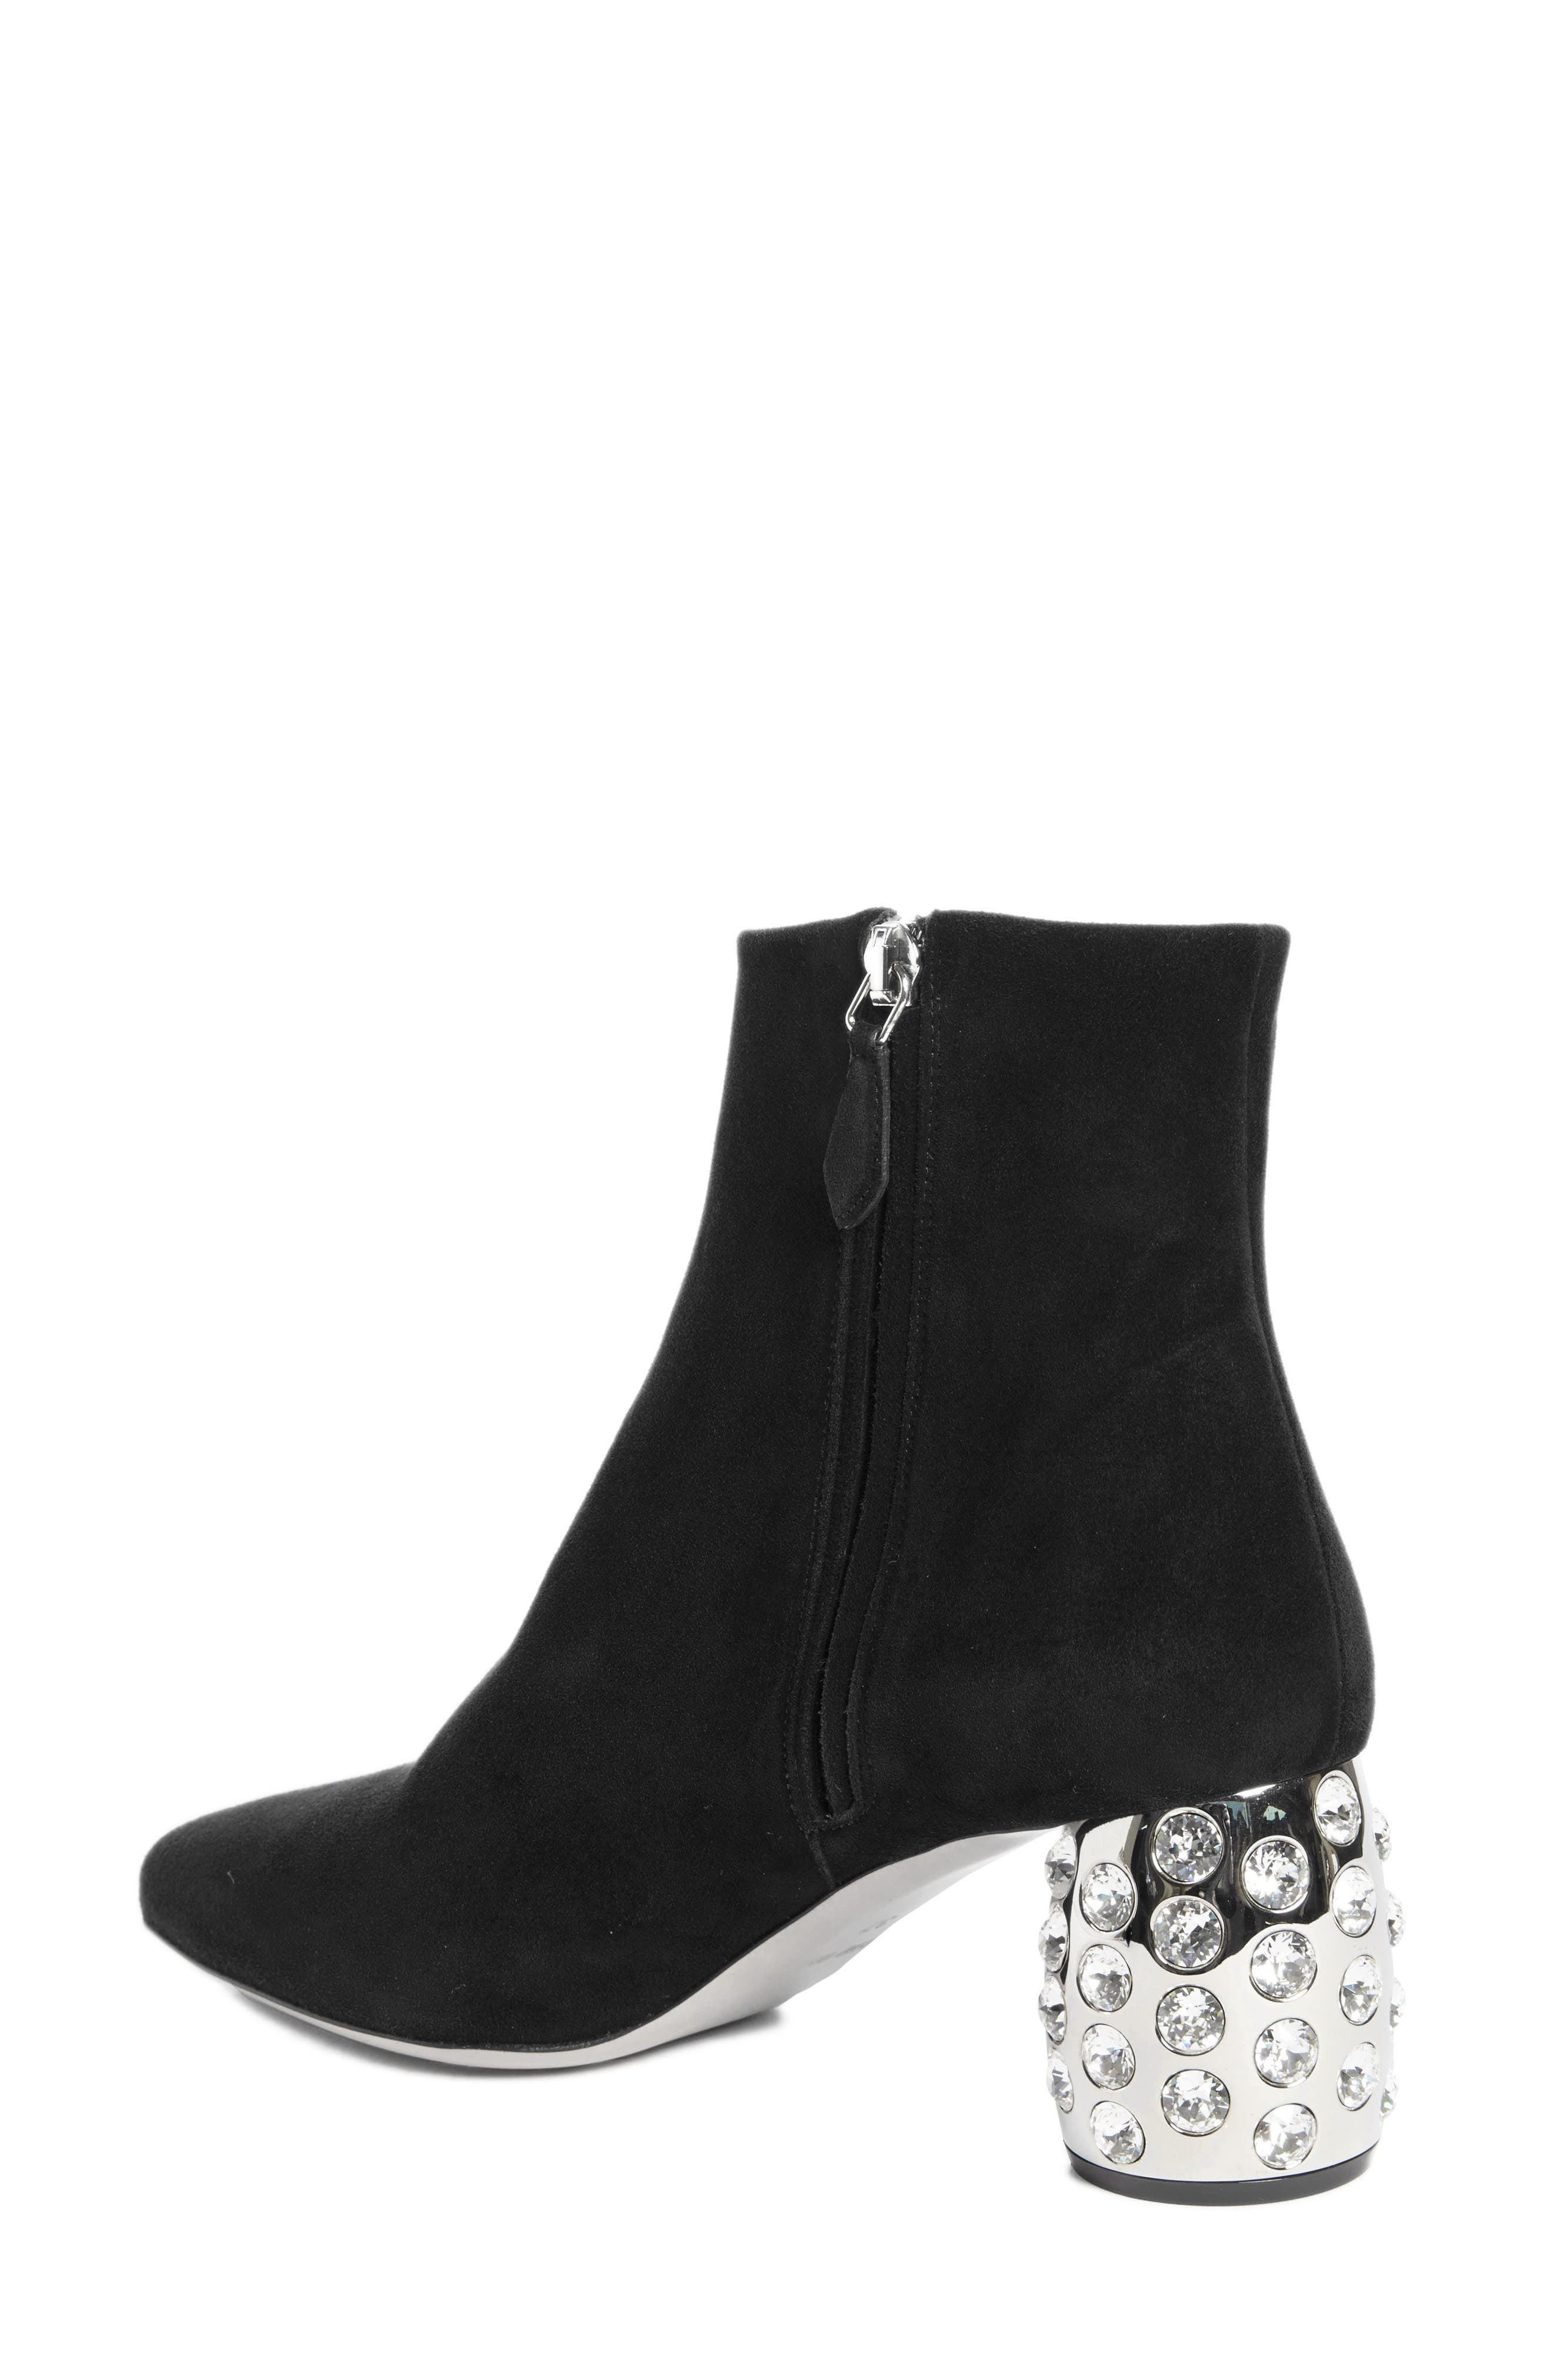 Alternate Image 2  - Miu Miu Embellished Block Heel Boot (Women)